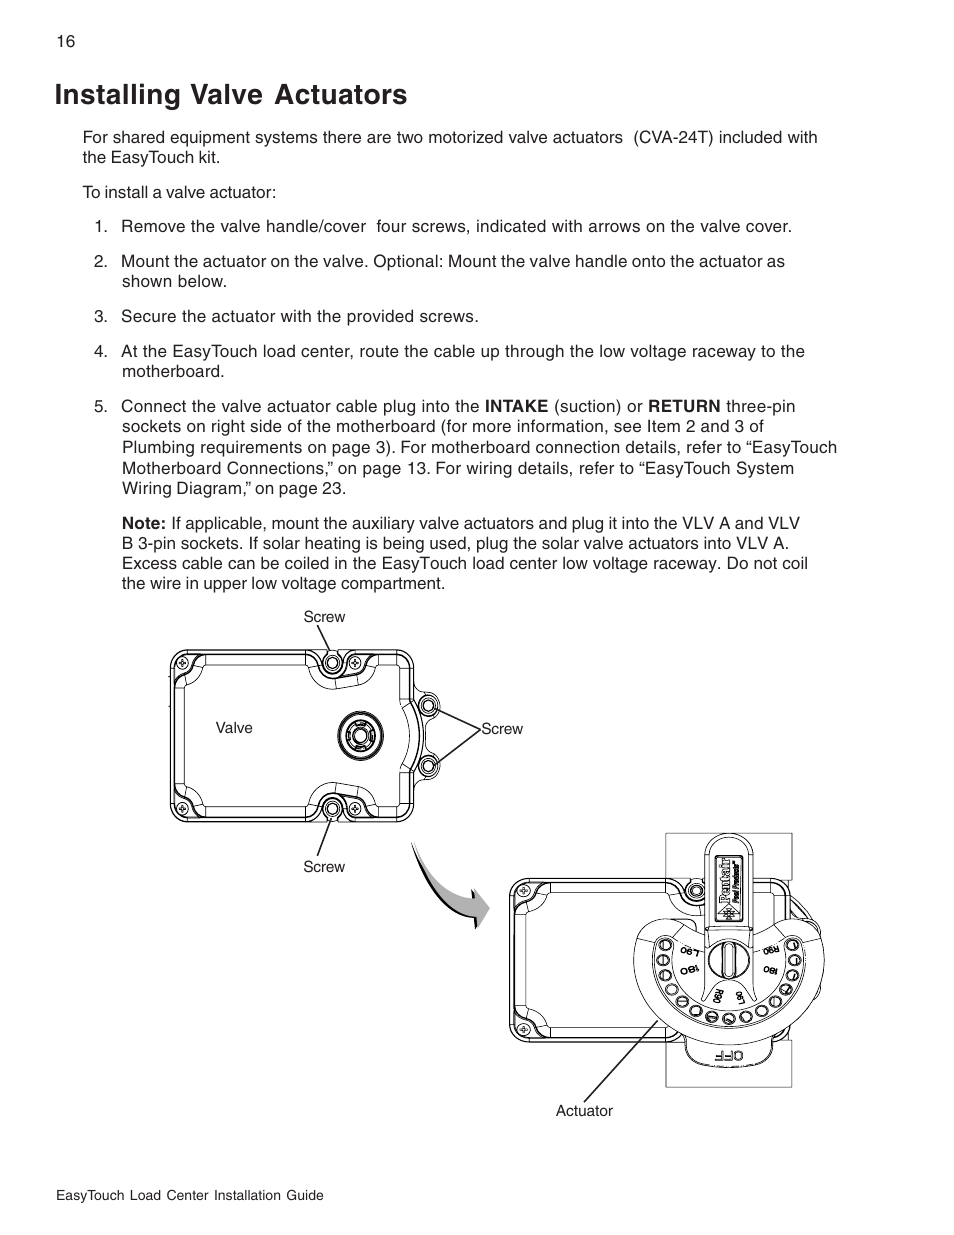 Wiring Diagram For Pentair Actuator Wf24 Jandy Installing Valve Actuators Easytouch 8 And 4 Pool Spa 1